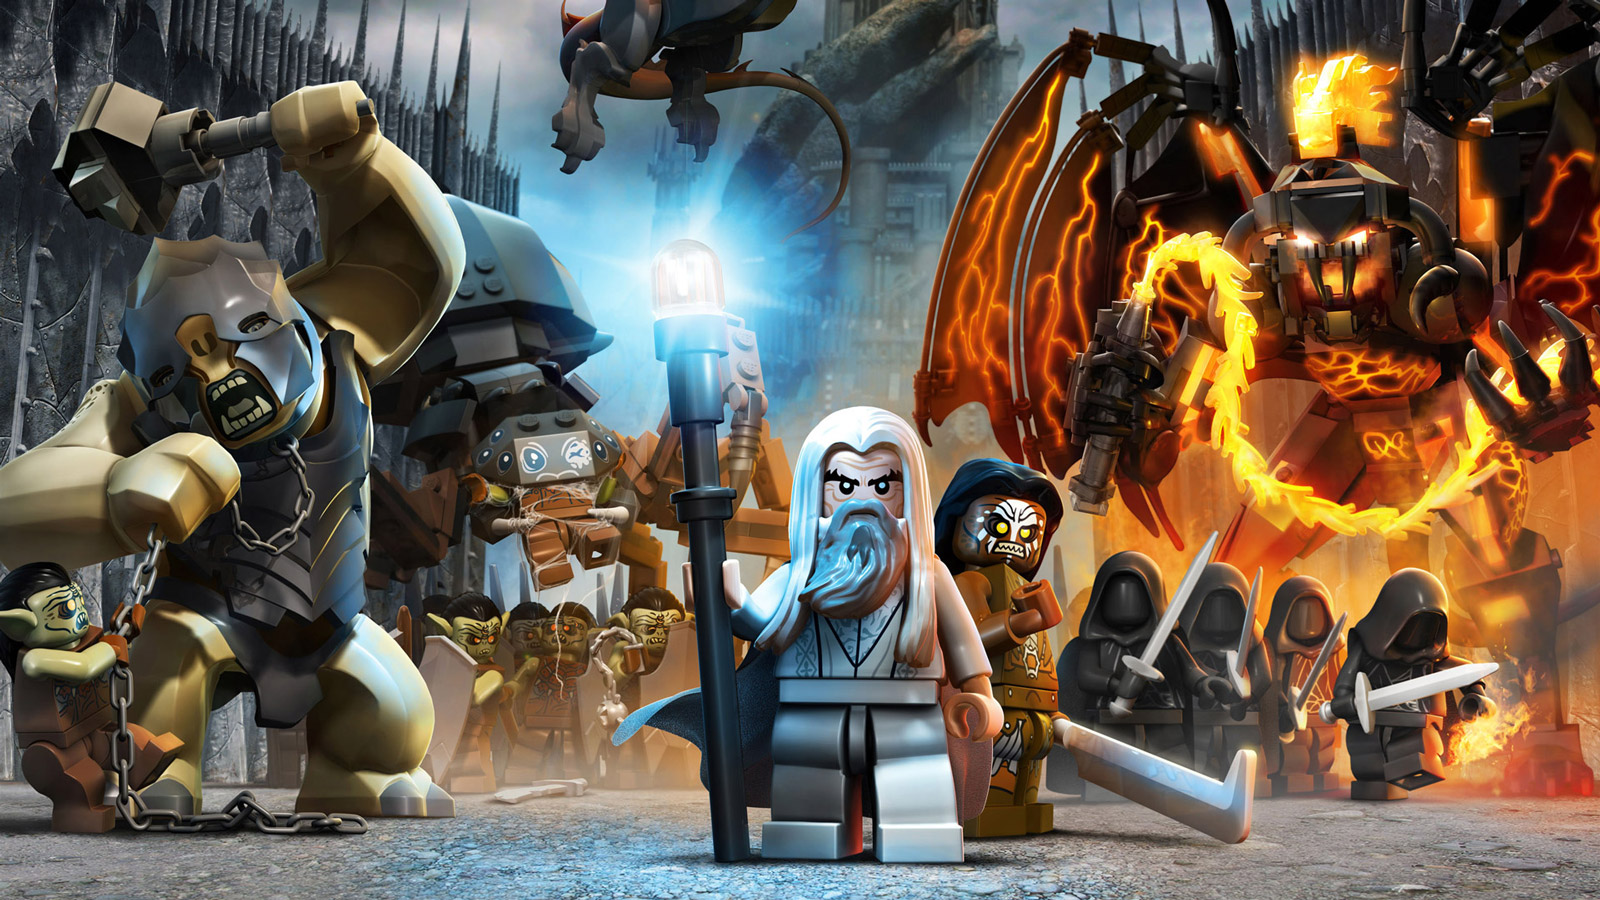 Will Lego Lord Of The Rings Work On Windows